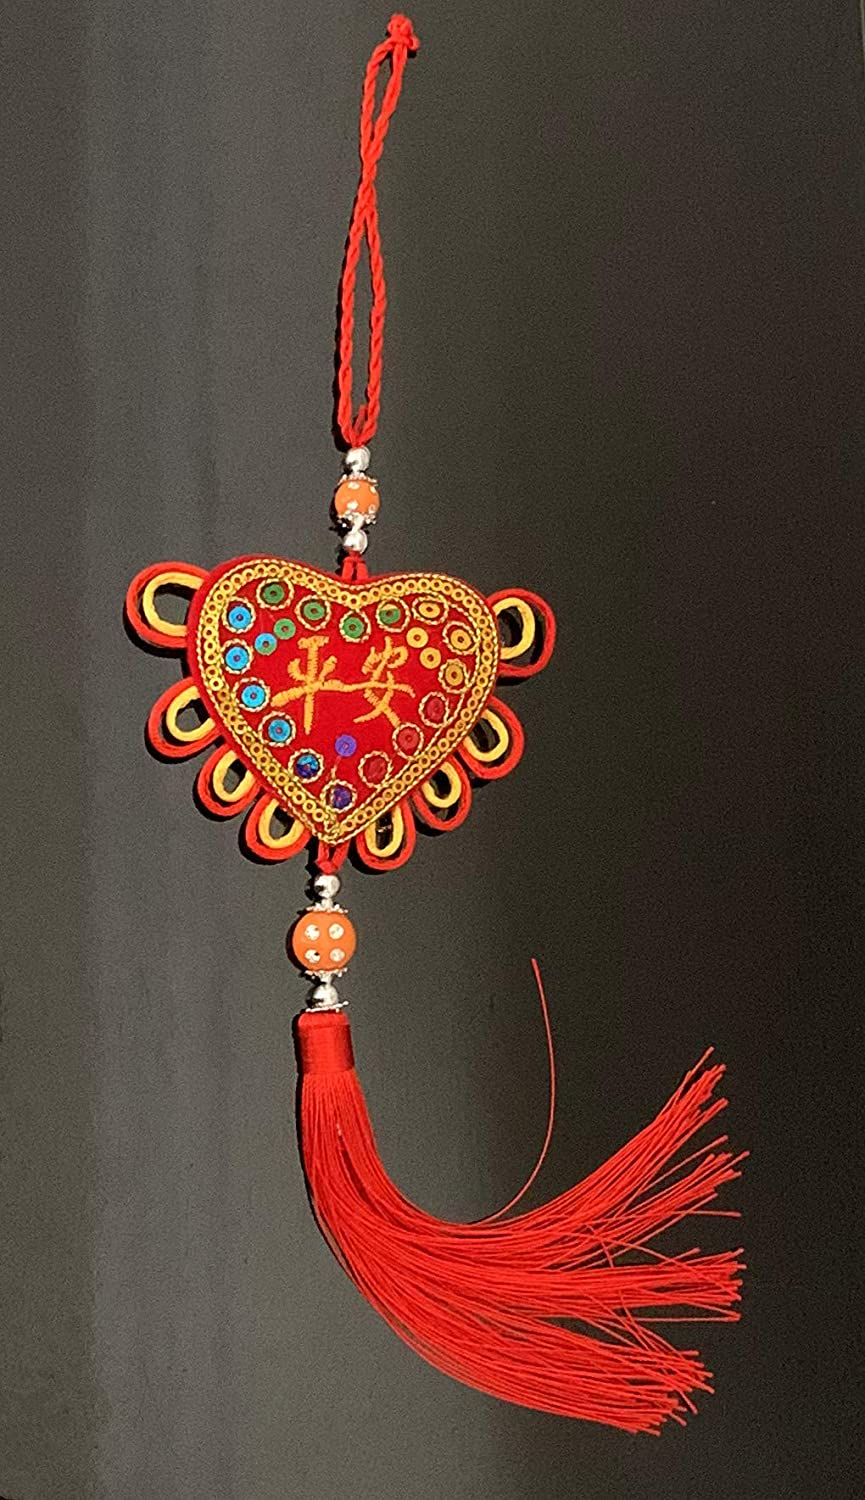 FENG SHUI-CHINESE KNOT WALL CAR HANGING ORNAMENT-BLISS HAPPINESS BLESSING LUCKY